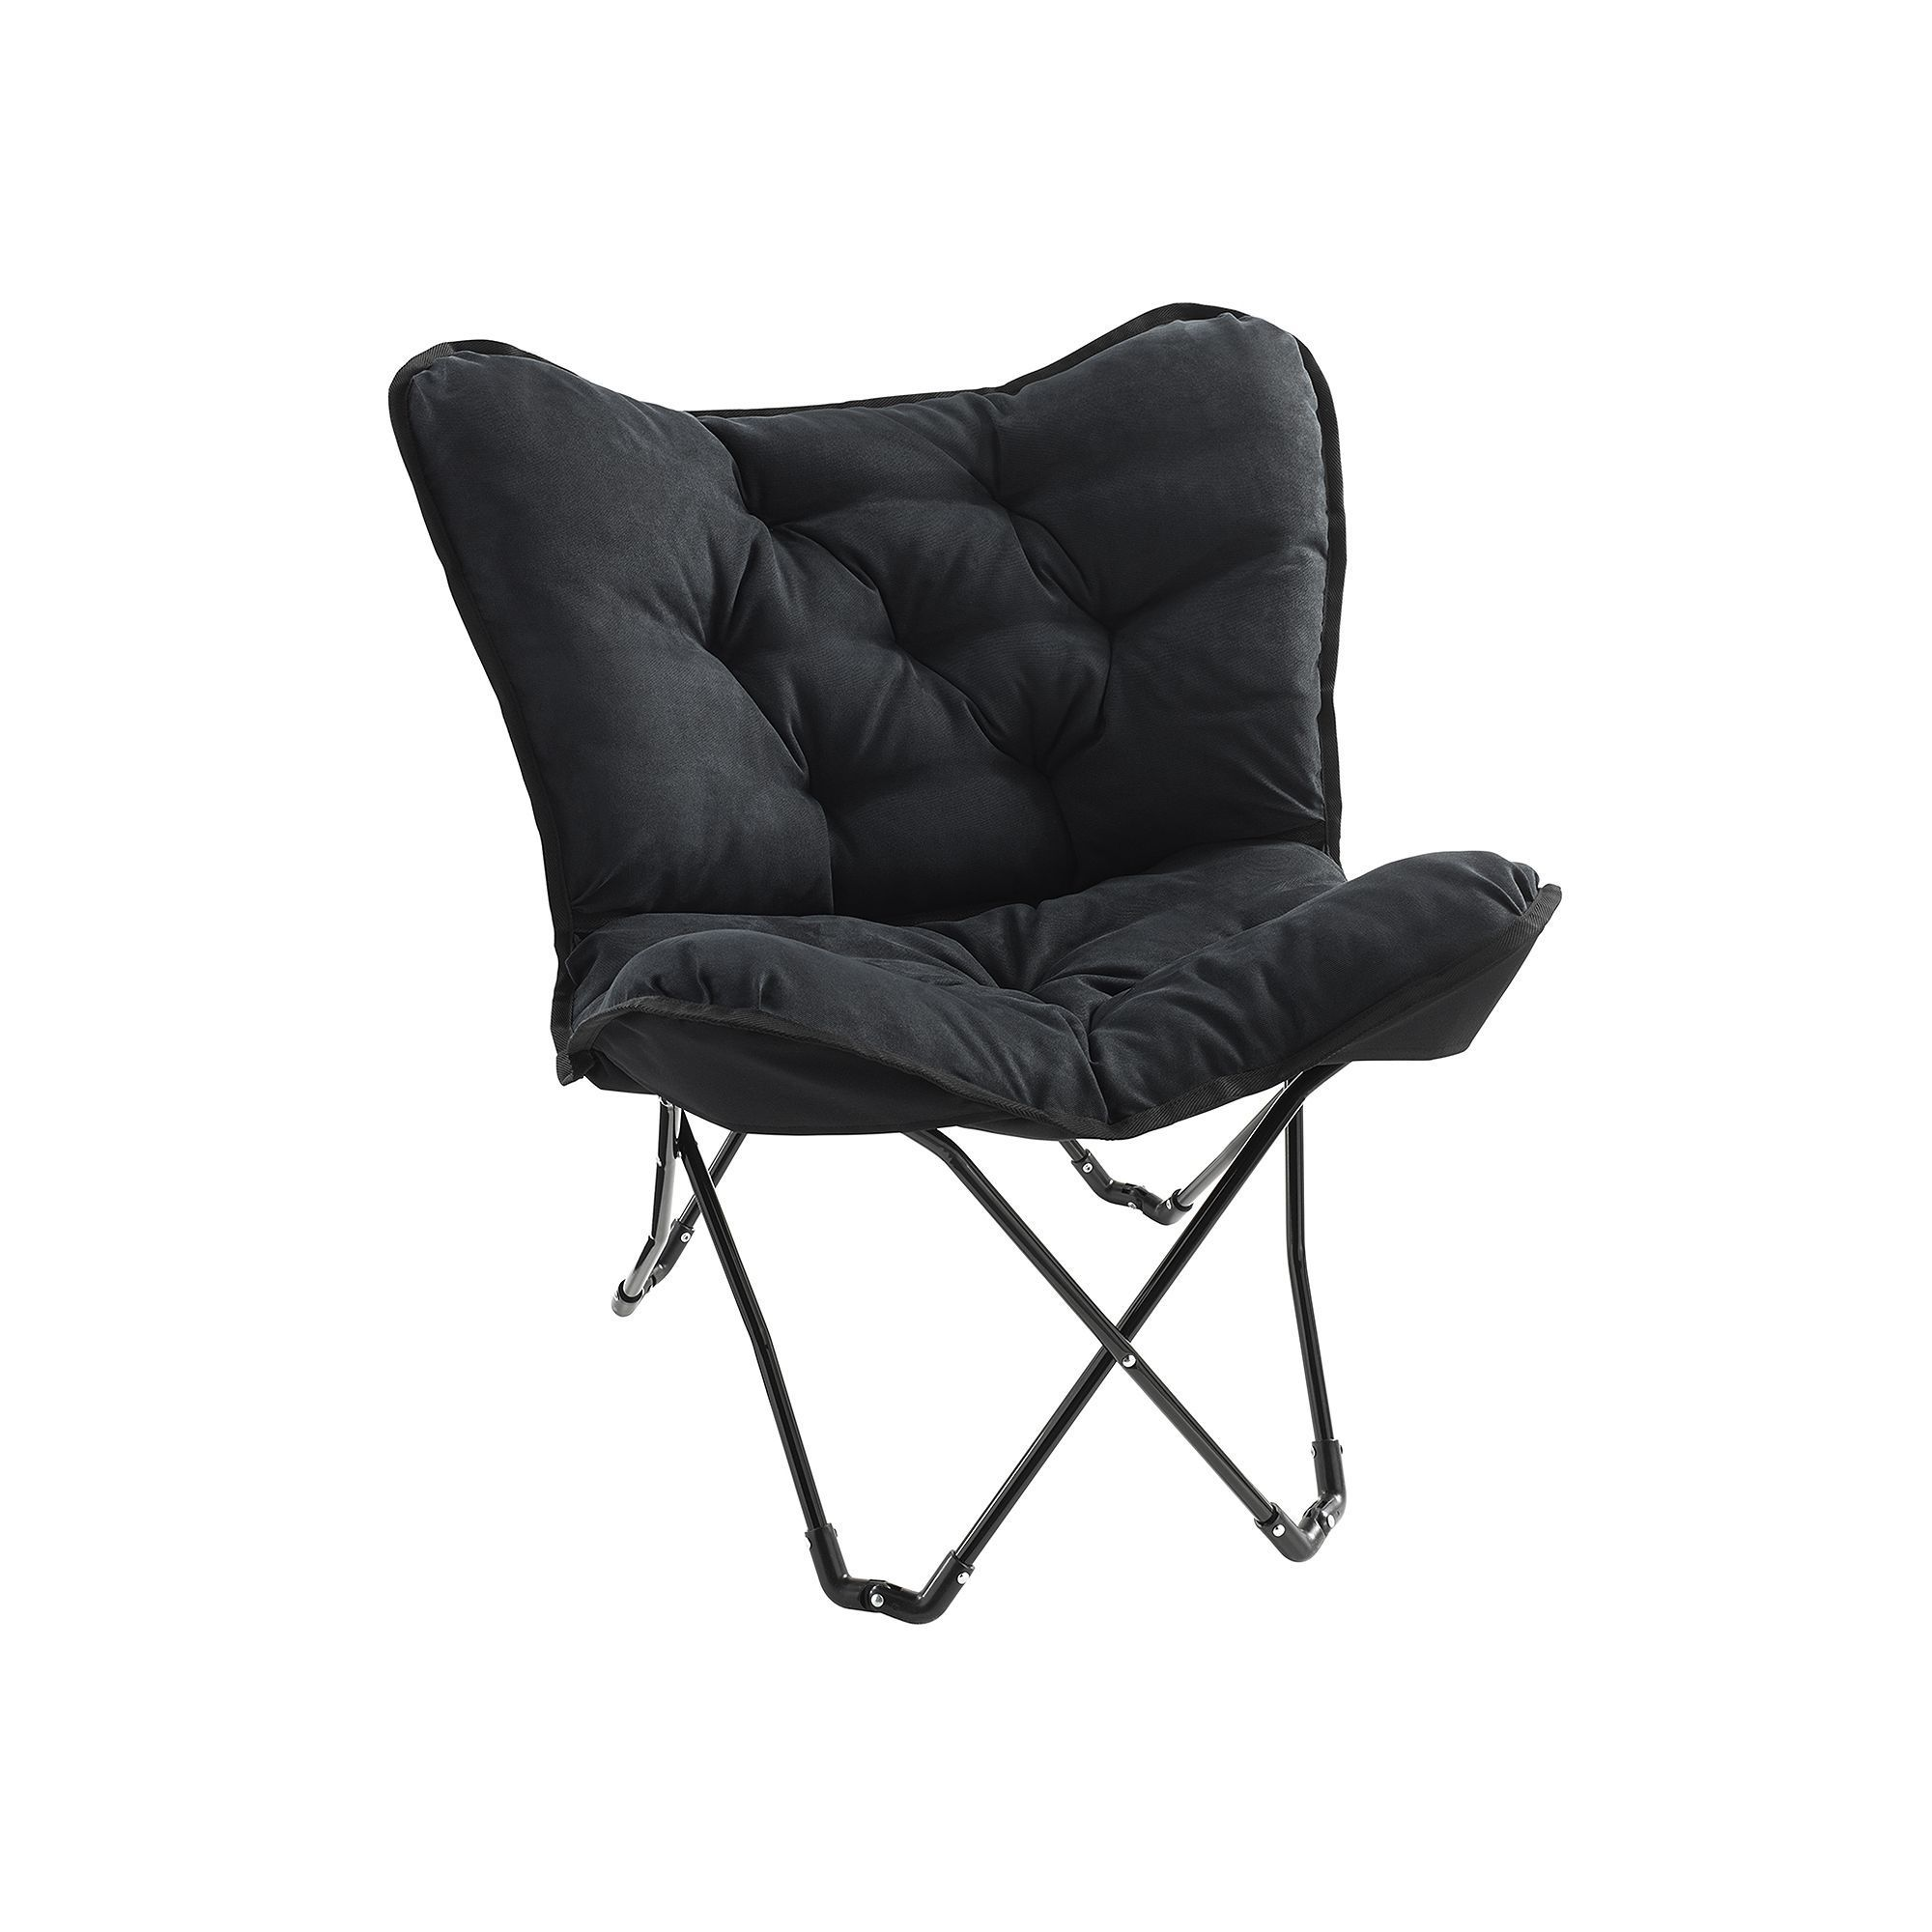 Butterfly chair black - Simple By Design Memory Foam Butterfly Chair Black